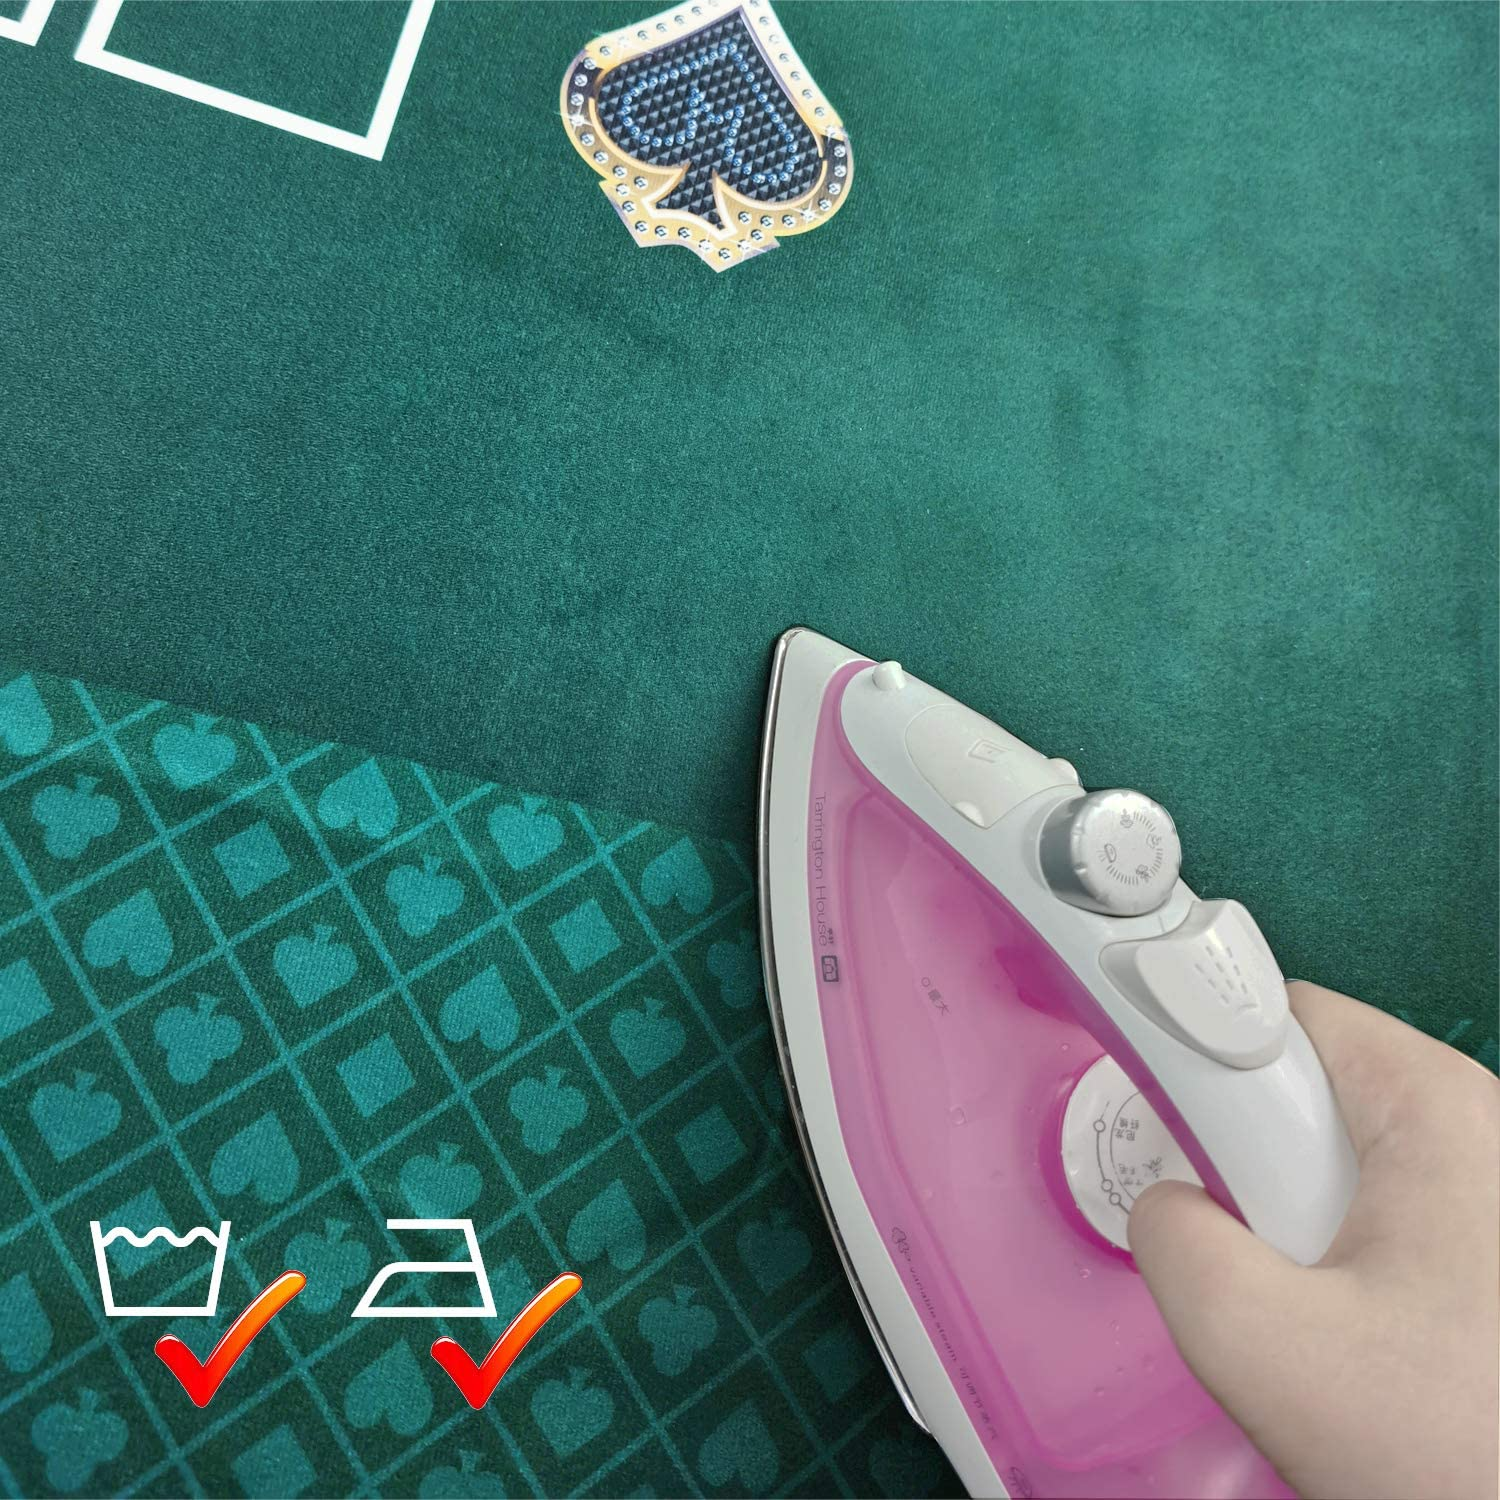 BALIKEN Poker 108X60Inch Section of Two-Tone Suited Poker Table Speed Cloth